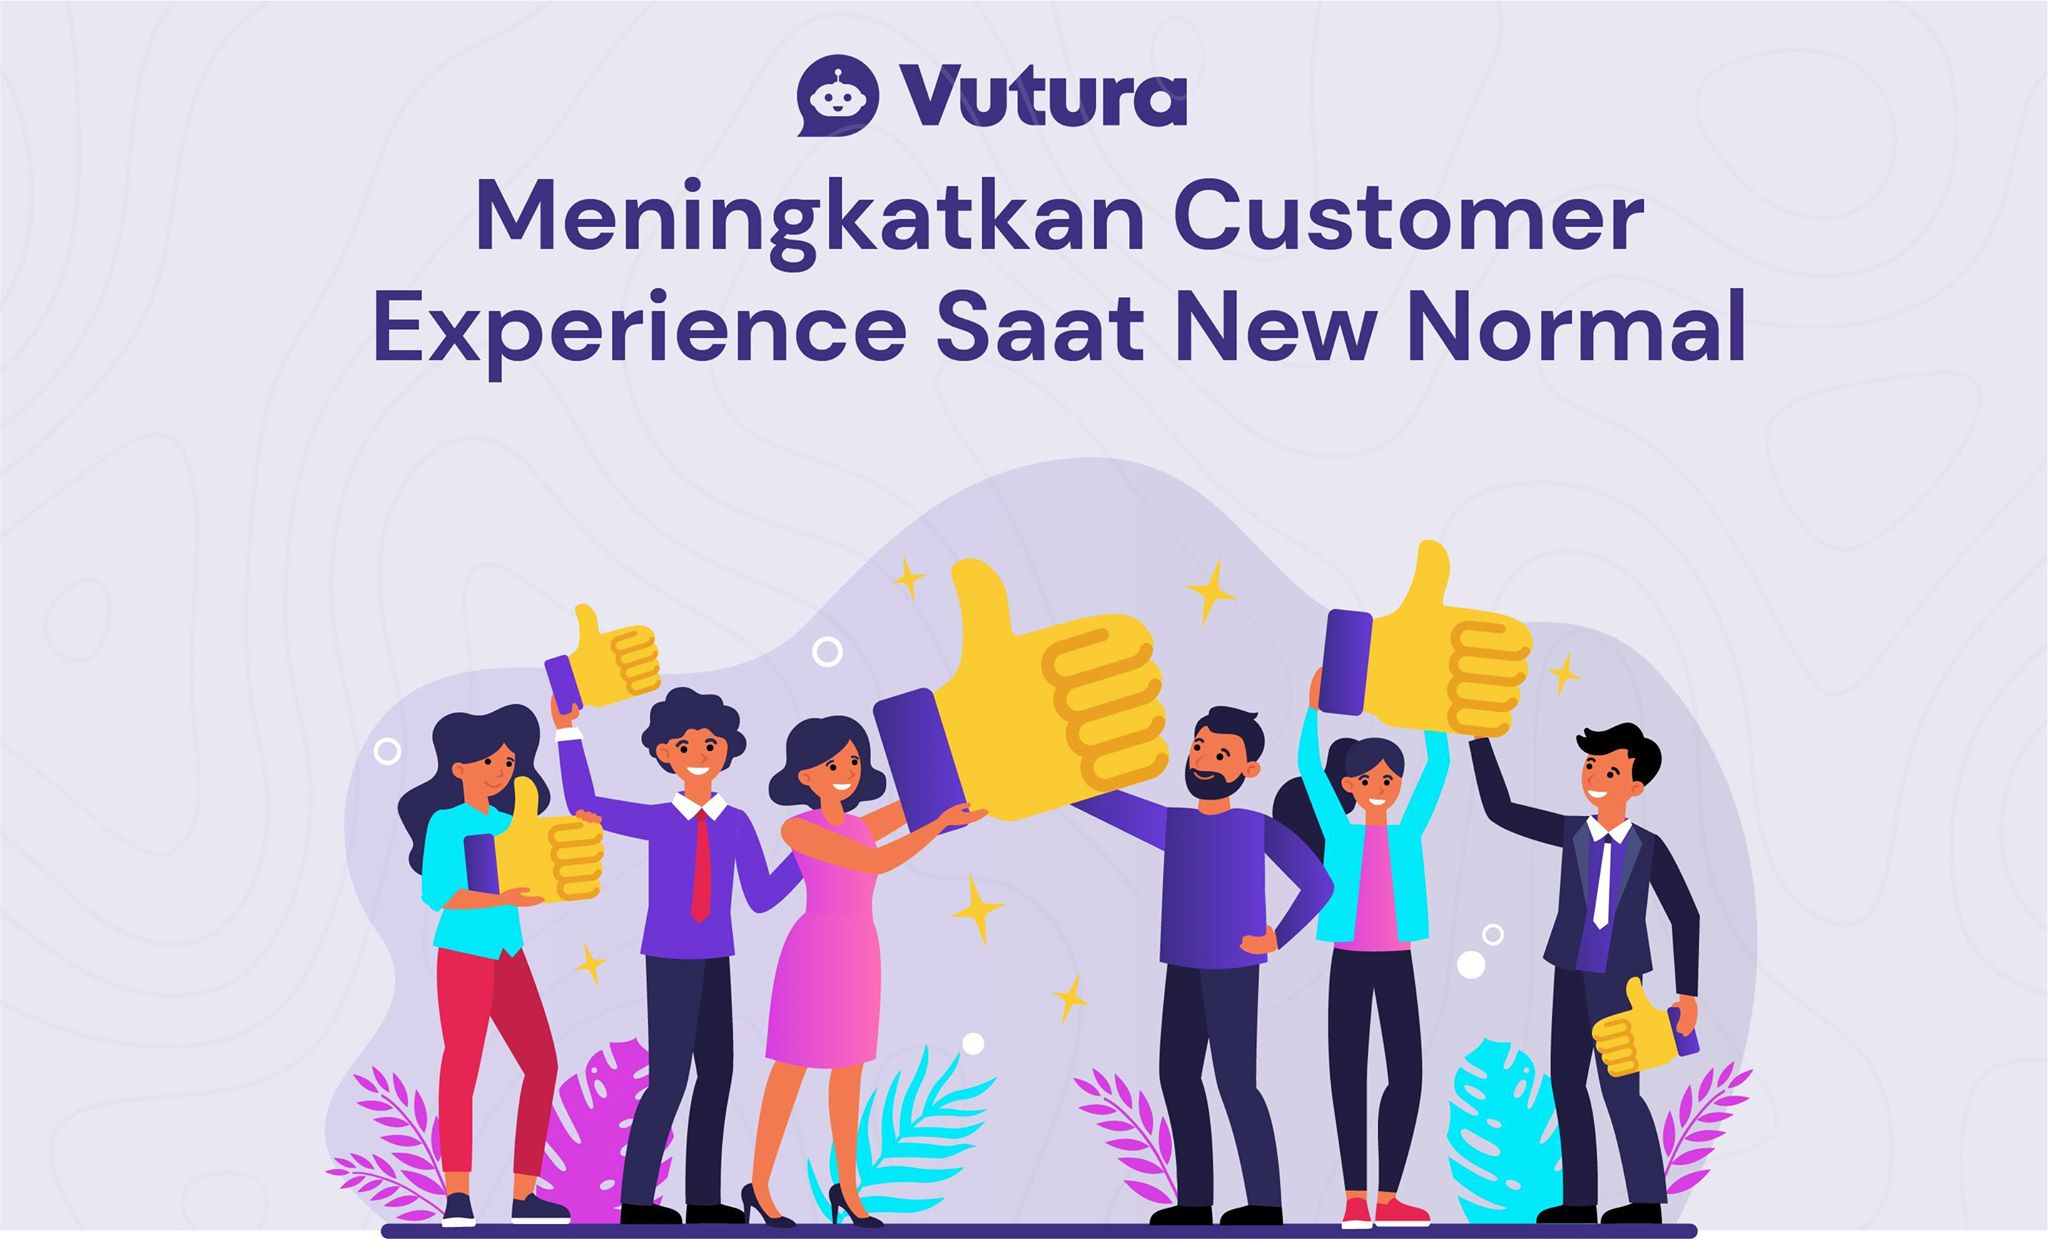 meningkatkan customer experience saat new normal illustration